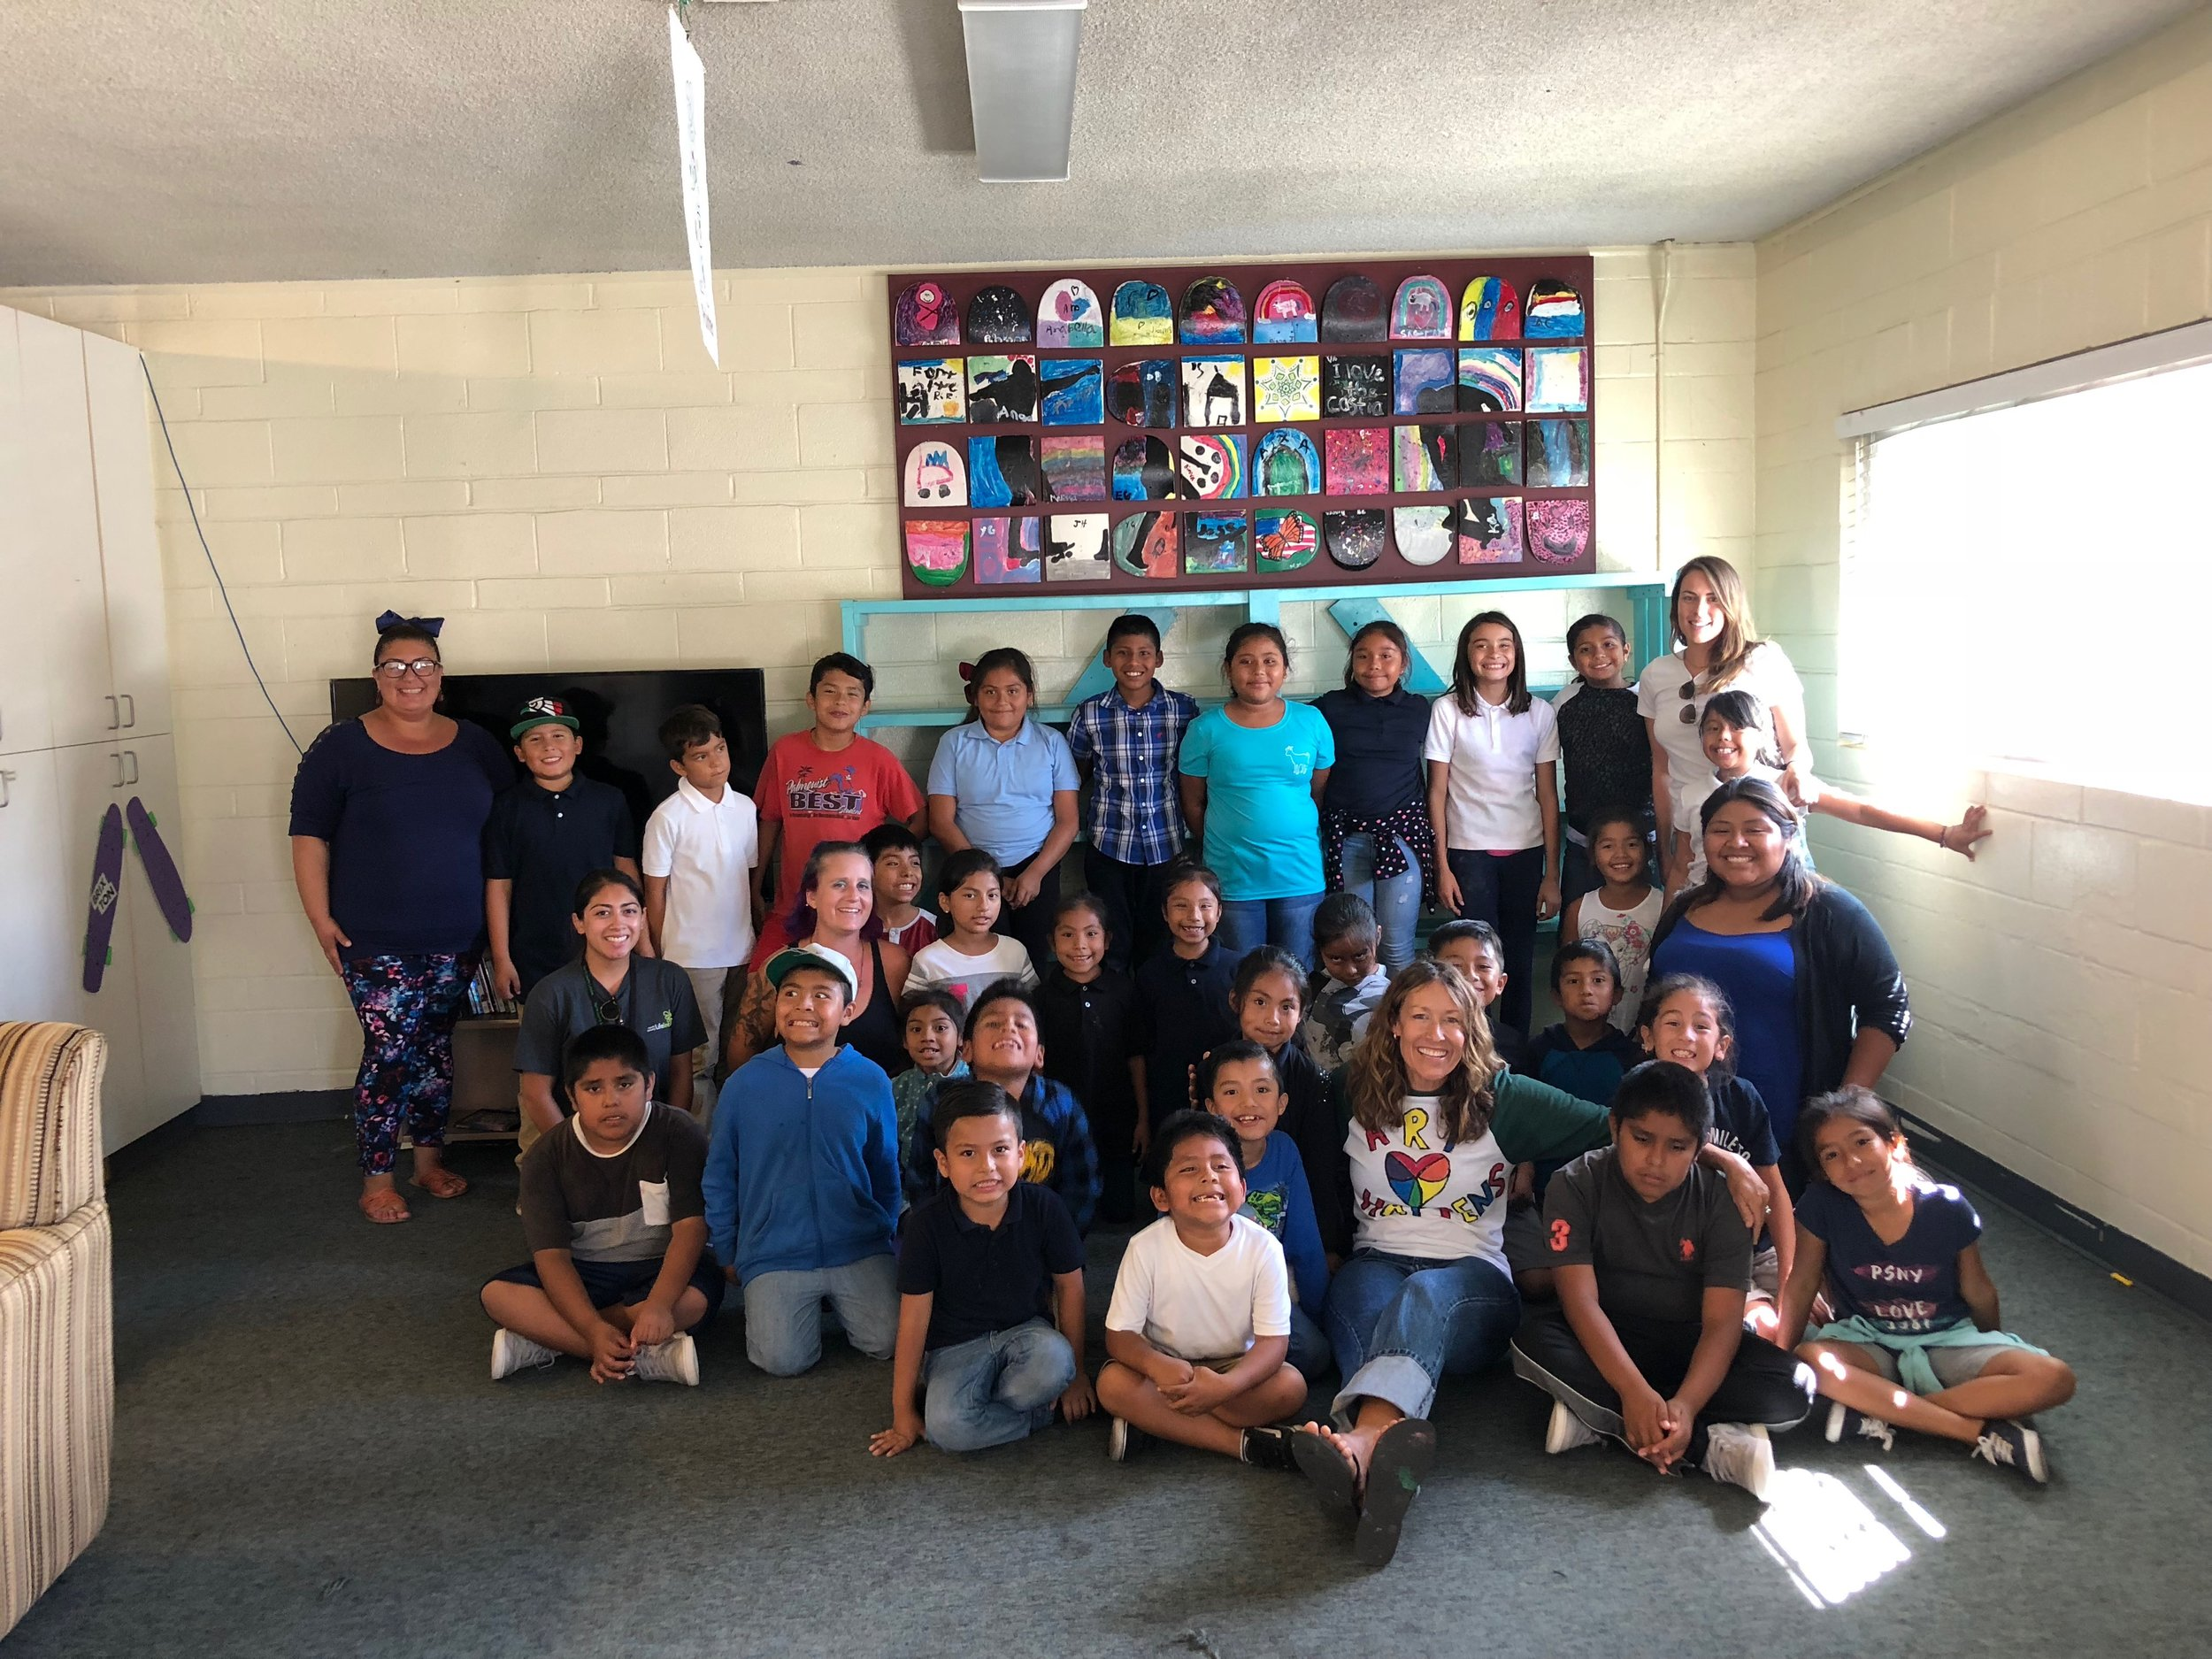 Art Collaboration w/Oceanside Lifeline - September 2018Rebecca Bauer came to La Casita and gave an art lesson to our kids. Together they created this mural made from broken skateboards. They also made an art piece to be raffled off at our Art & Music fundraiser in November.